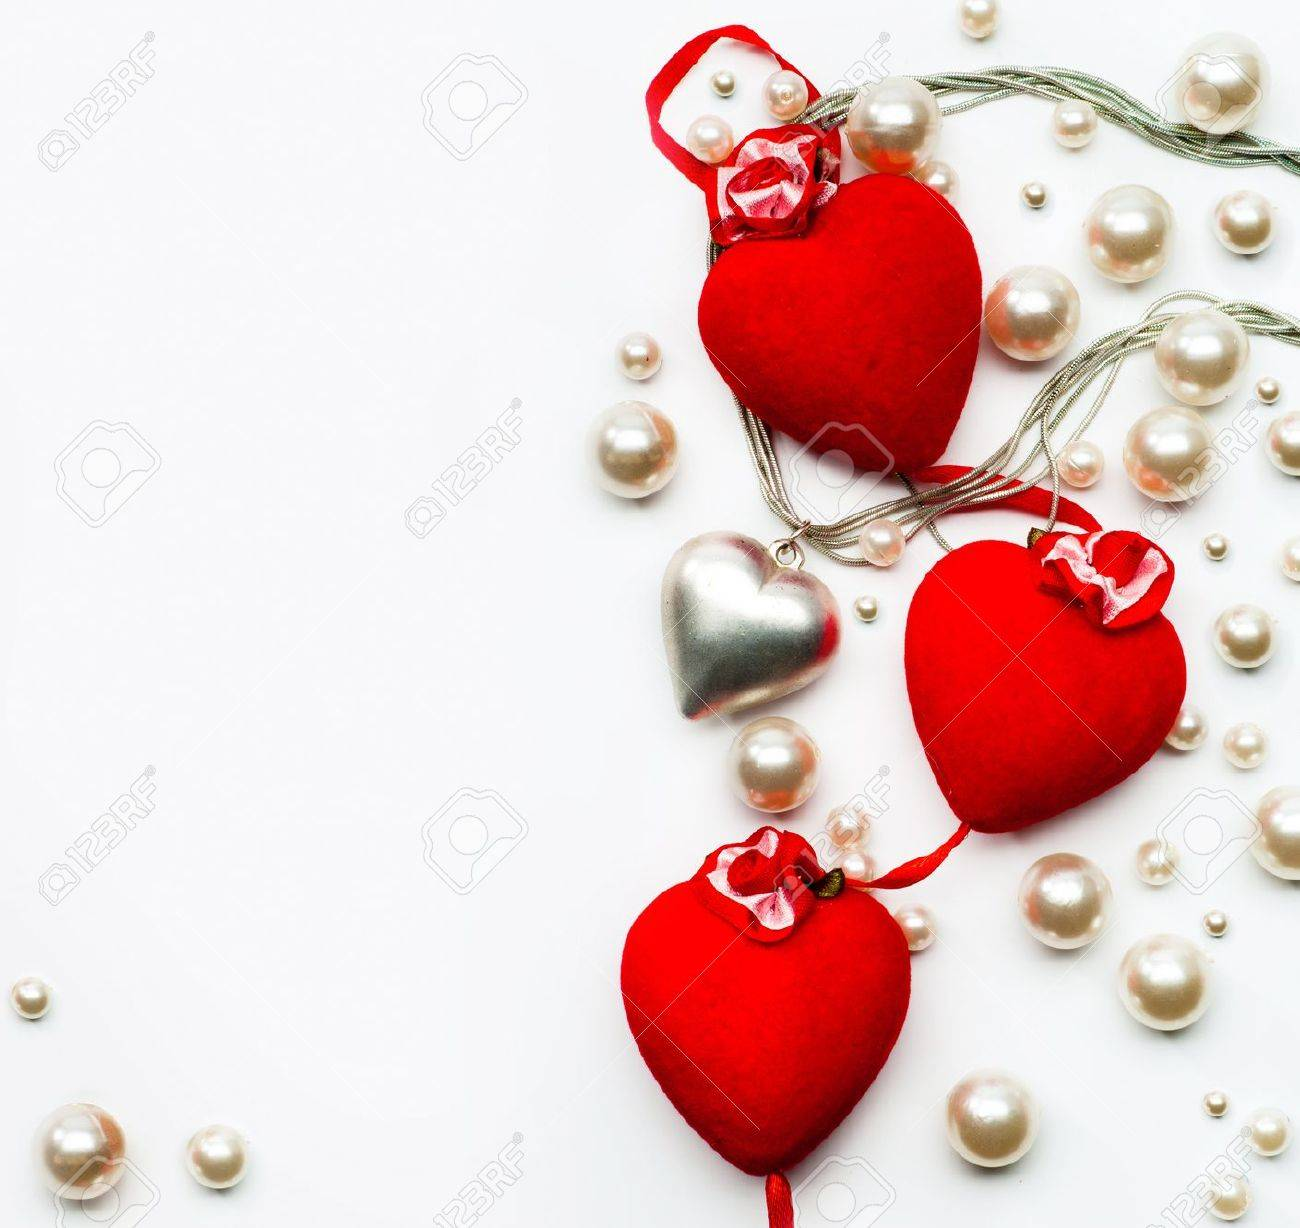 Design A Greeting Card With Hearts Happy Valentine Stock Photo